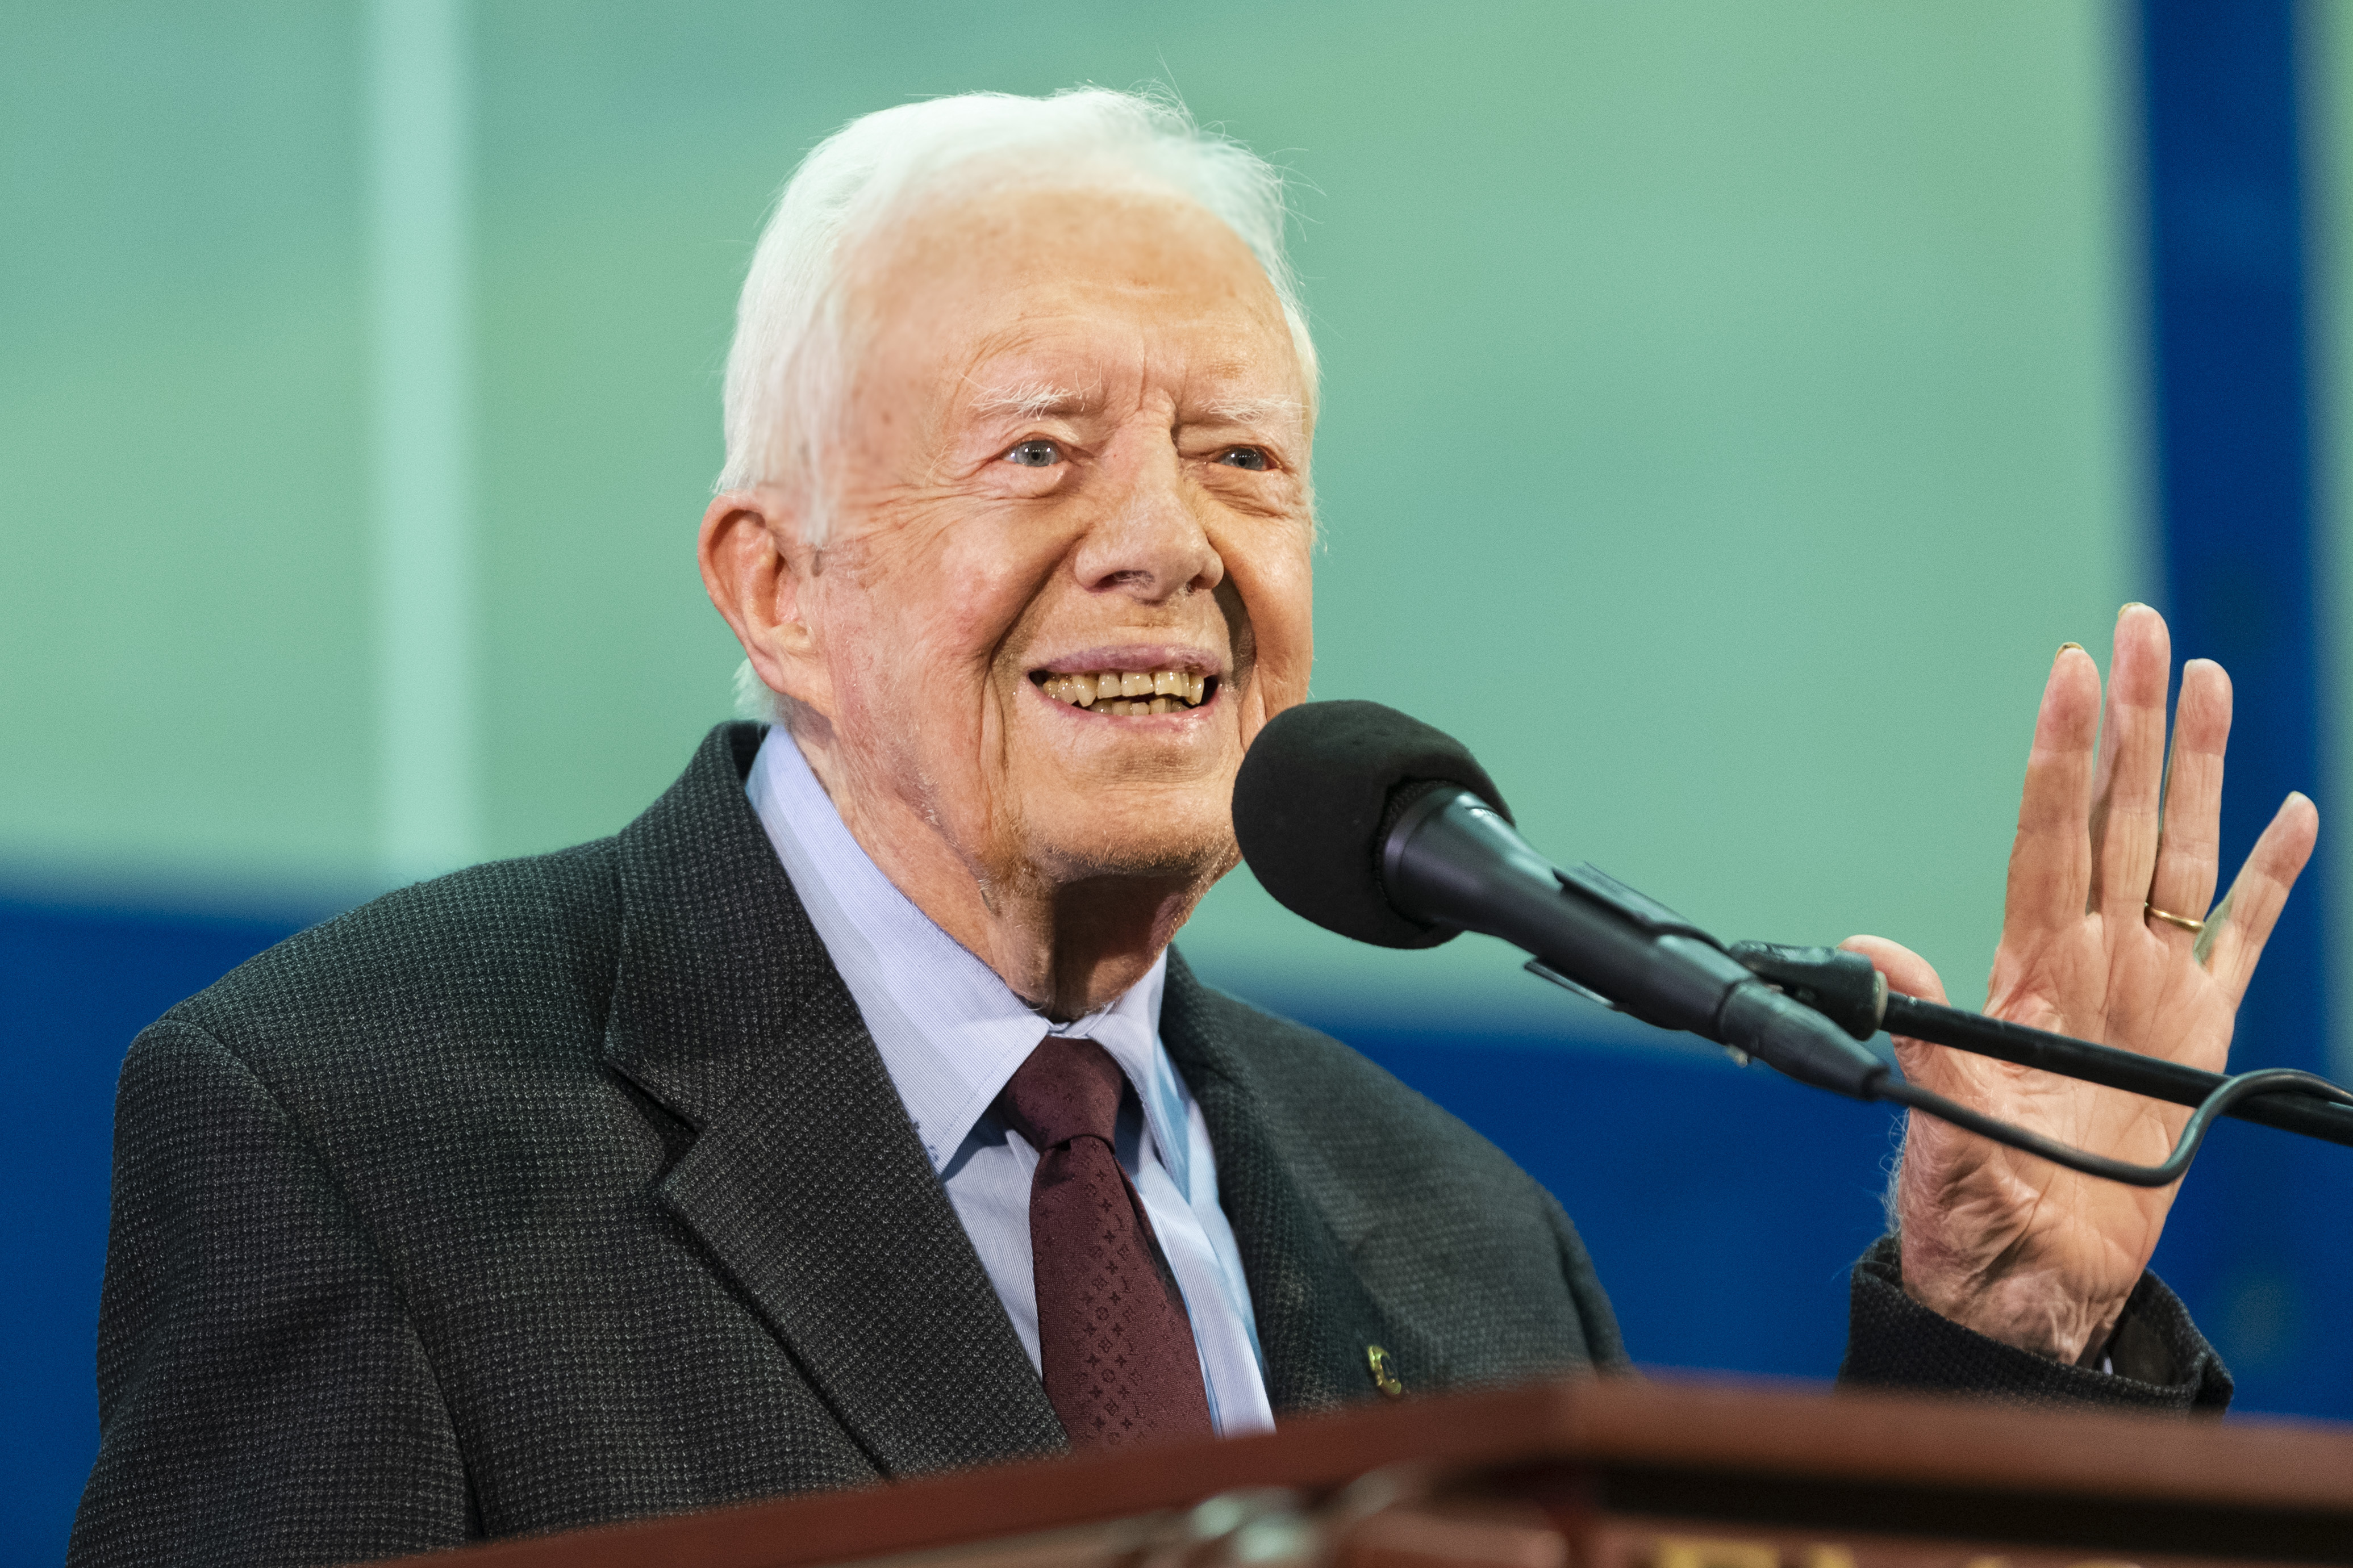 jimmy carter released from hospital